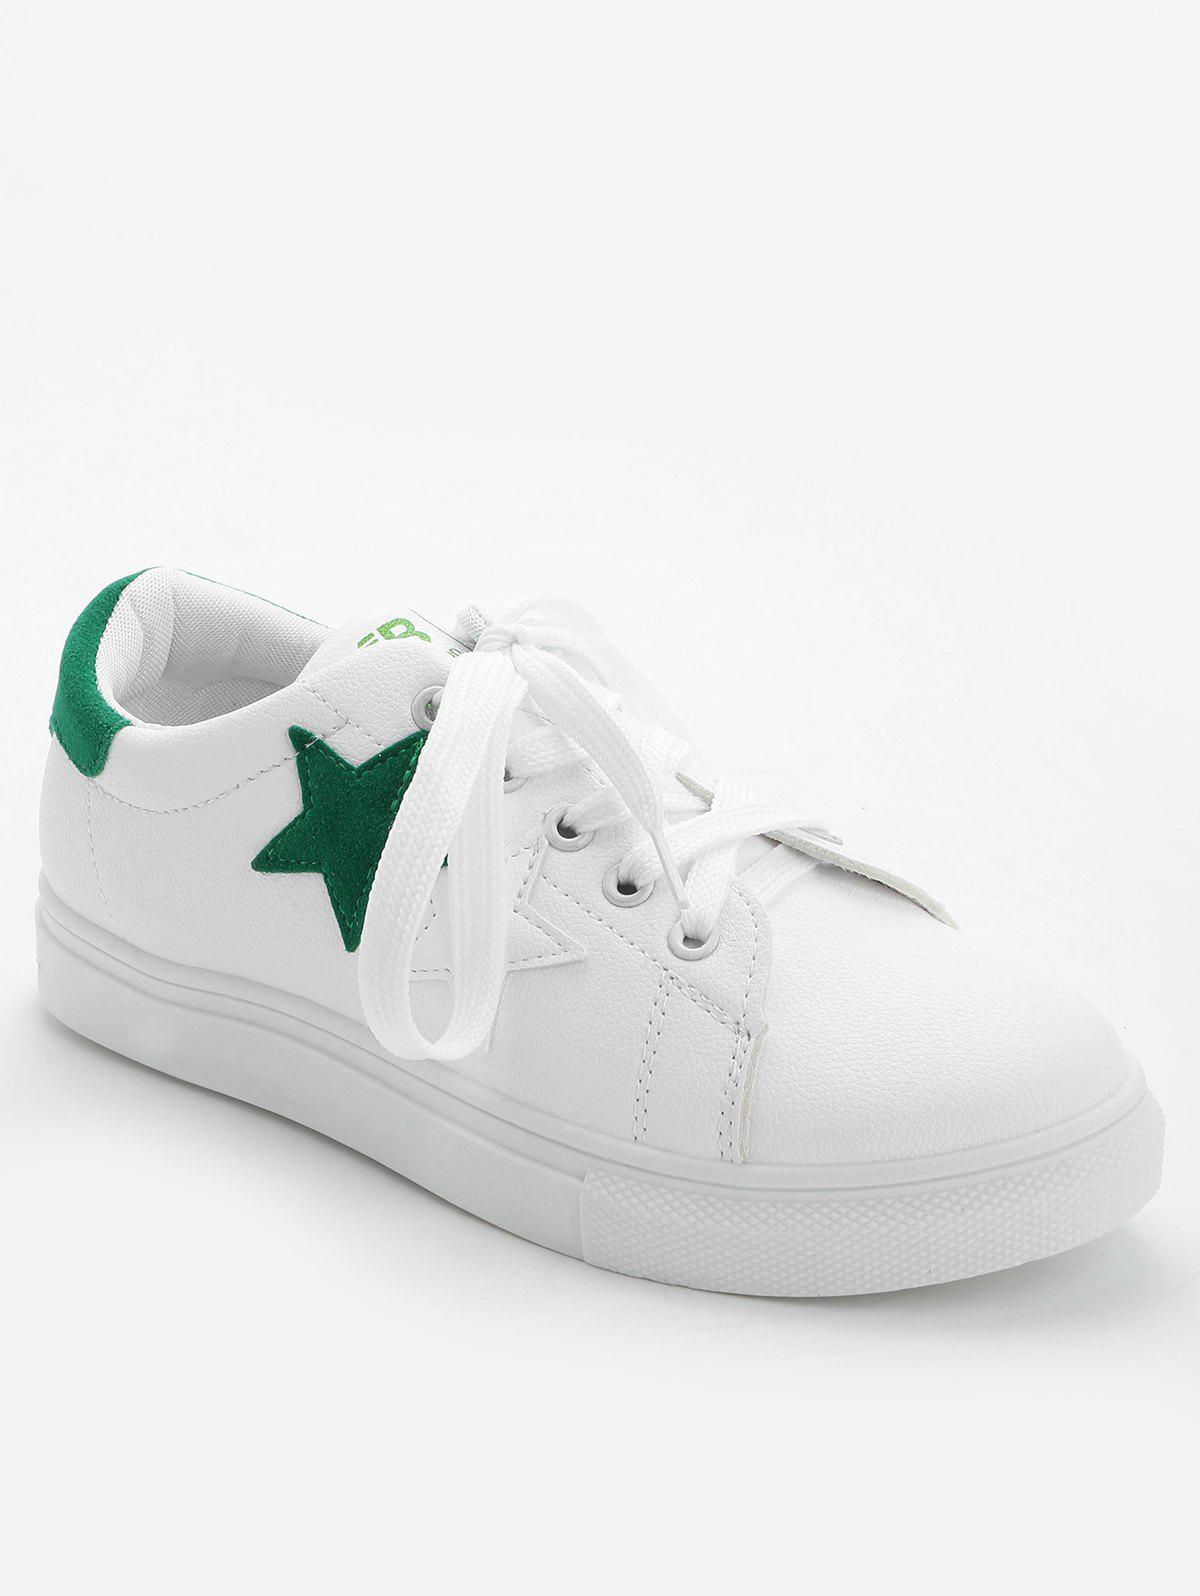 Contrasting Color Pentagram Skate Shoes - GREEN 38